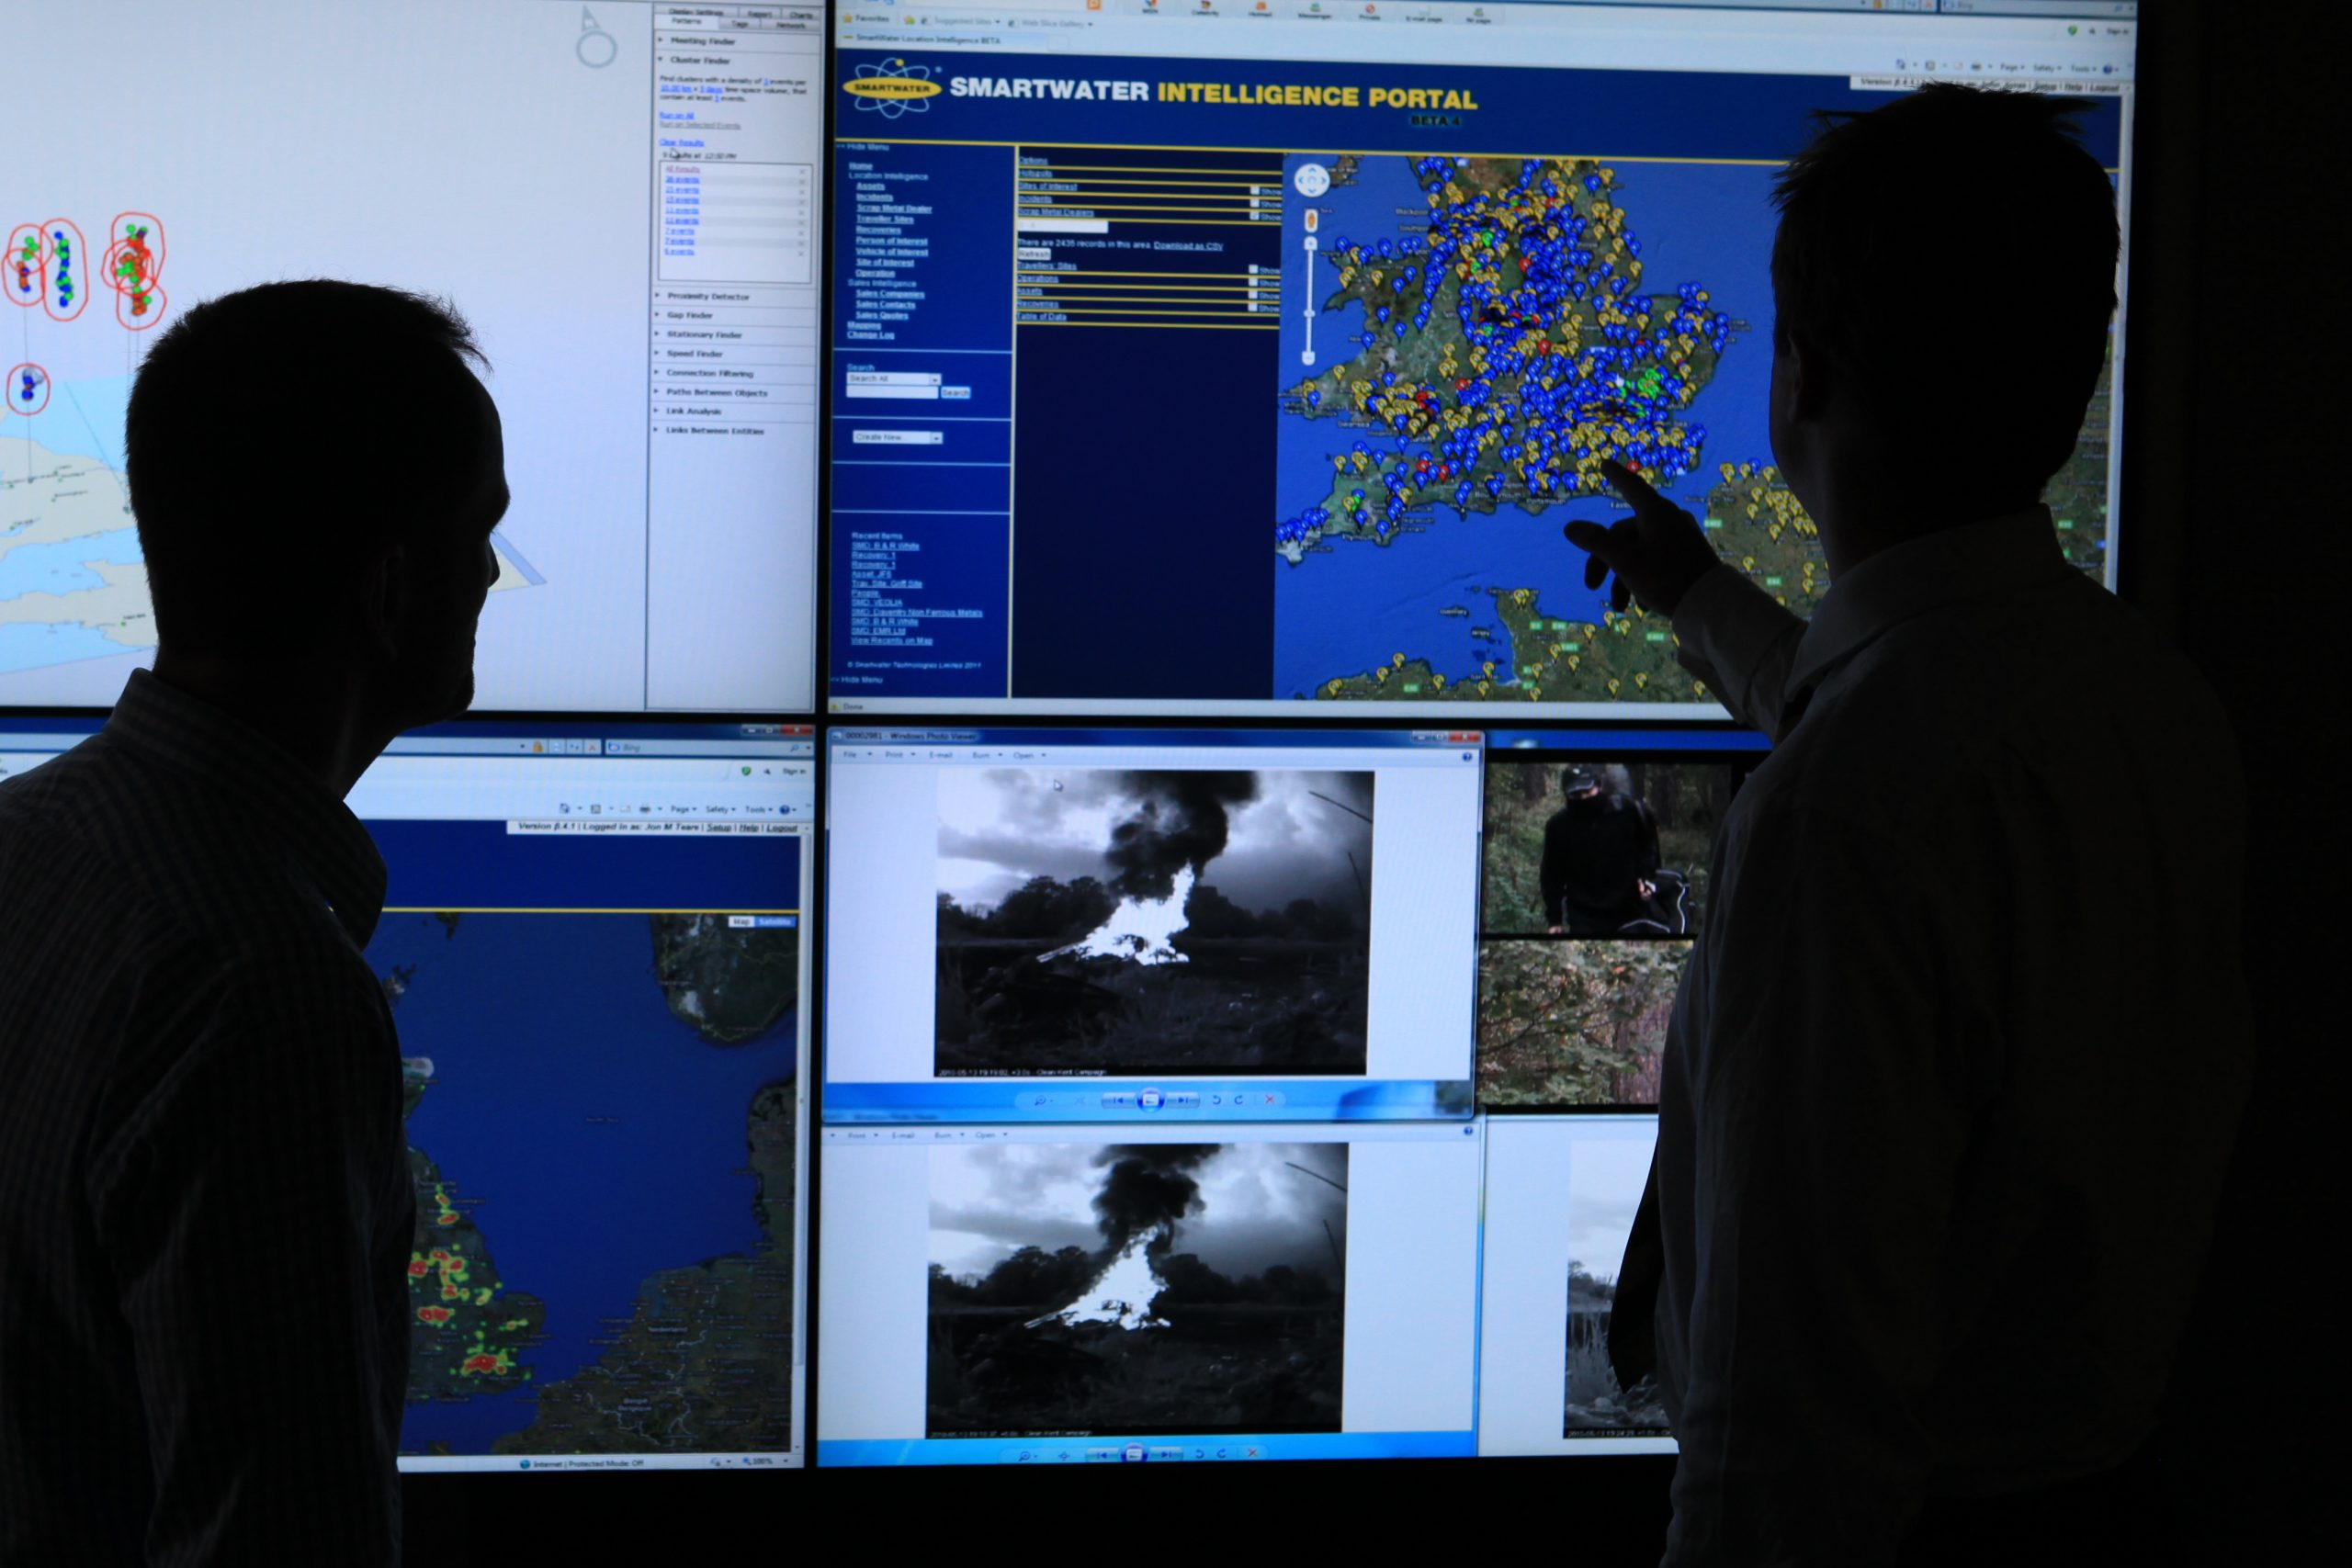 New national intelligence portal launched to track criminal gangs